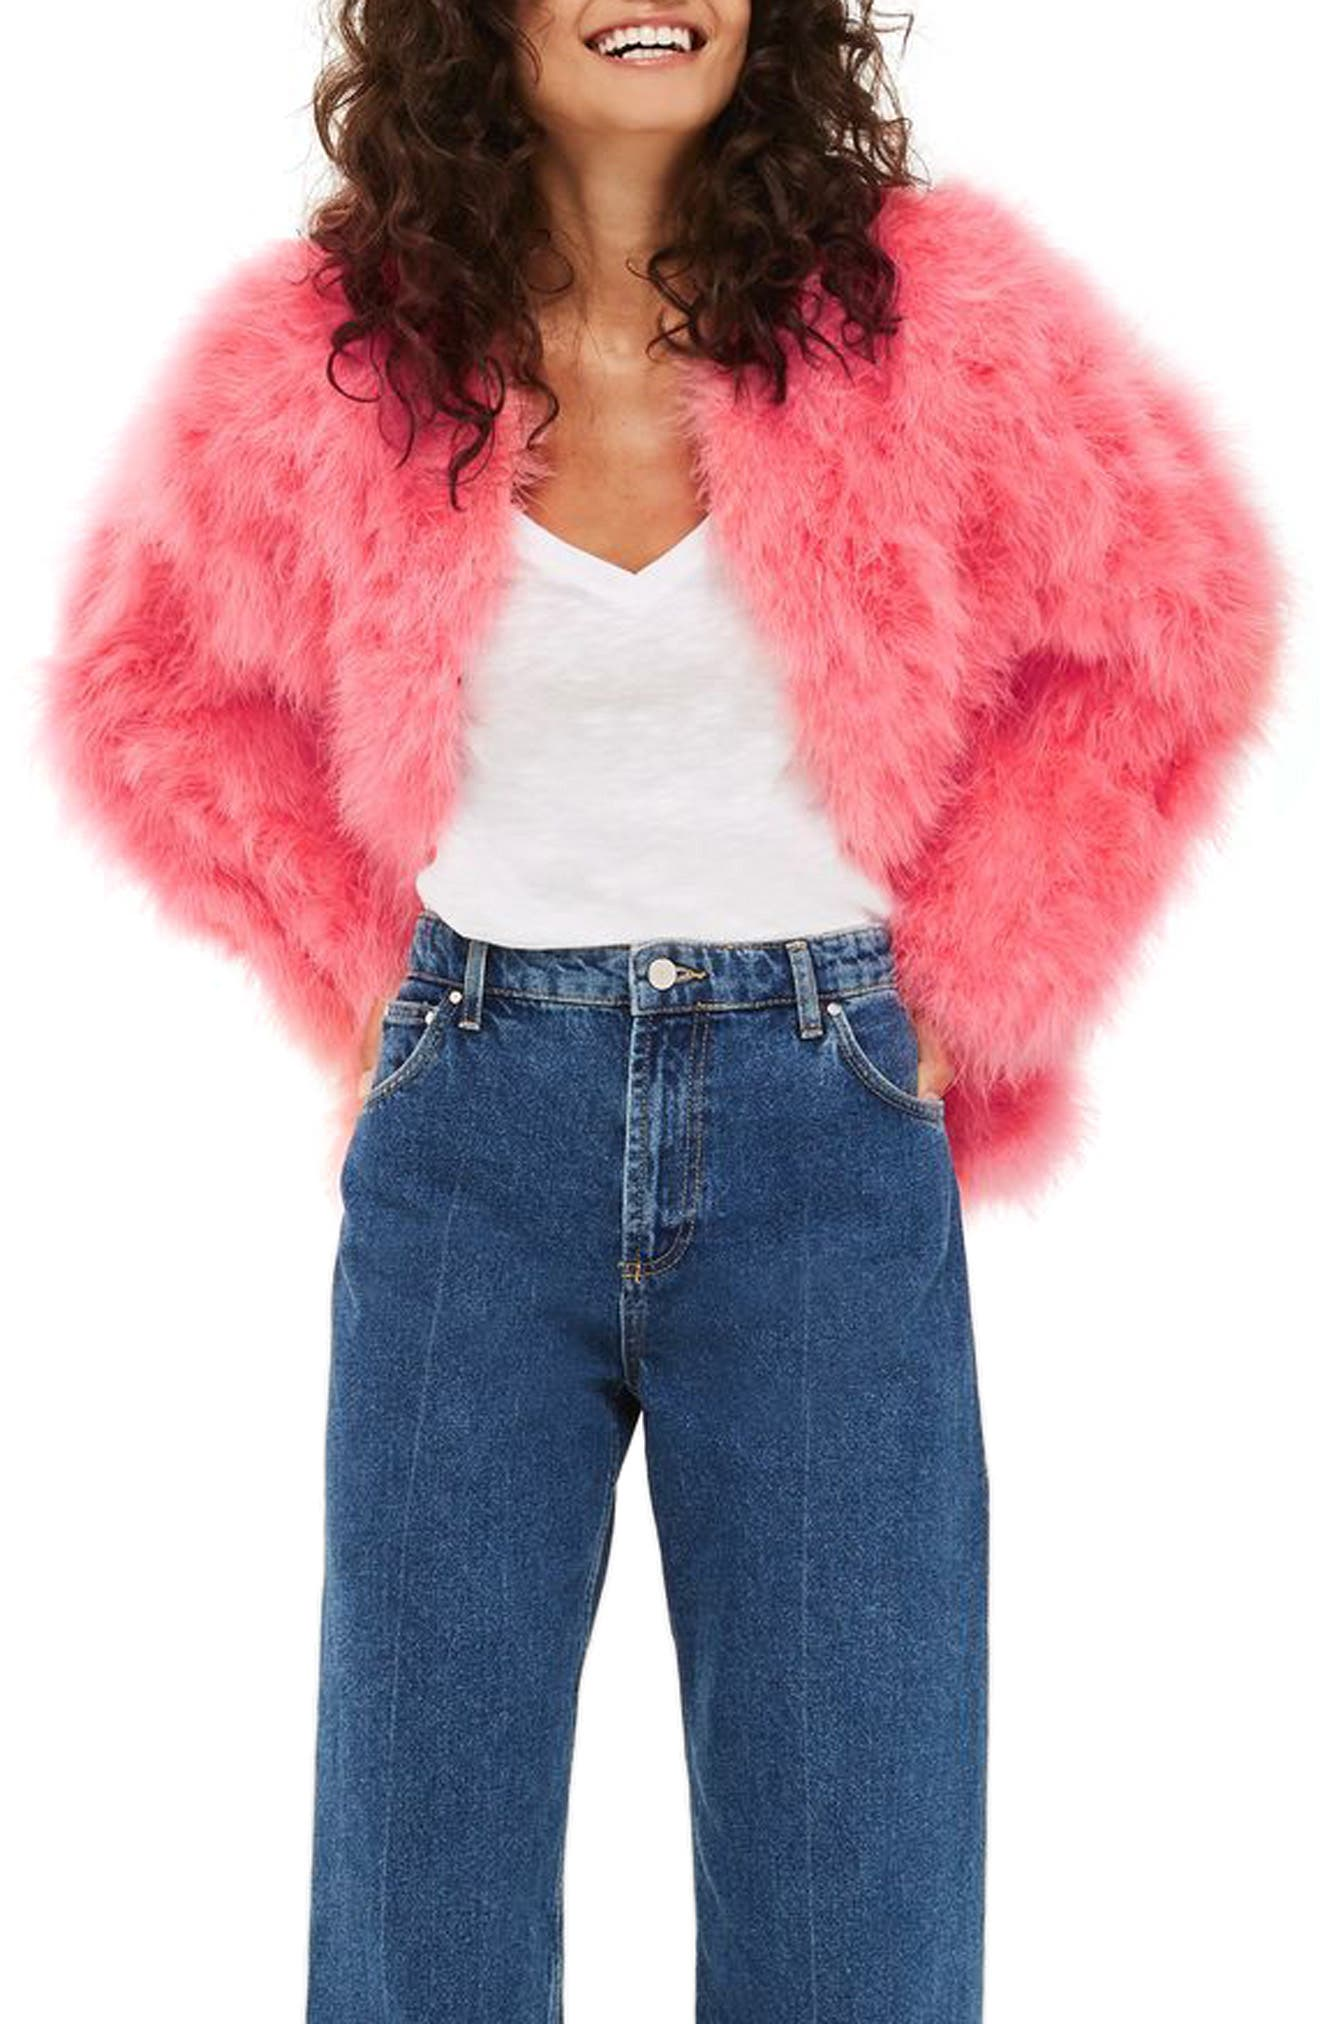 Marabou Feather Jacket,                         Main,                         color, 650